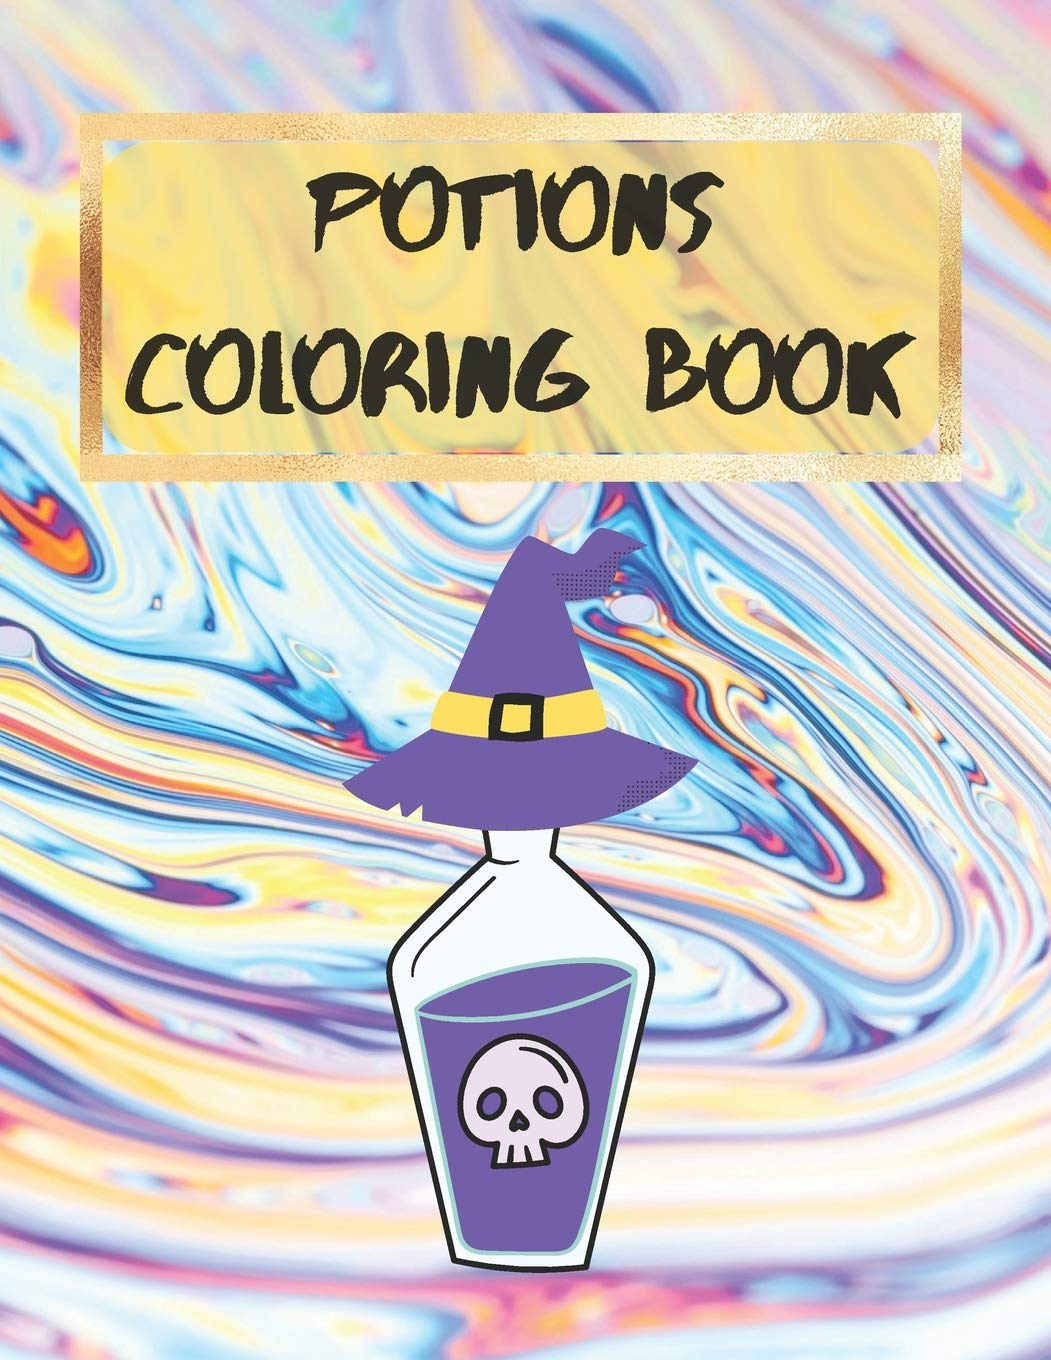 Potions Coloring Book Halloween Coloring Book For Children Easy To Use Coloring Pages For Toddlers And Kids 5 Halloween Activity Books For Kids Amazon Co Uk Stationery Velvet Owl 9798645071547 Books